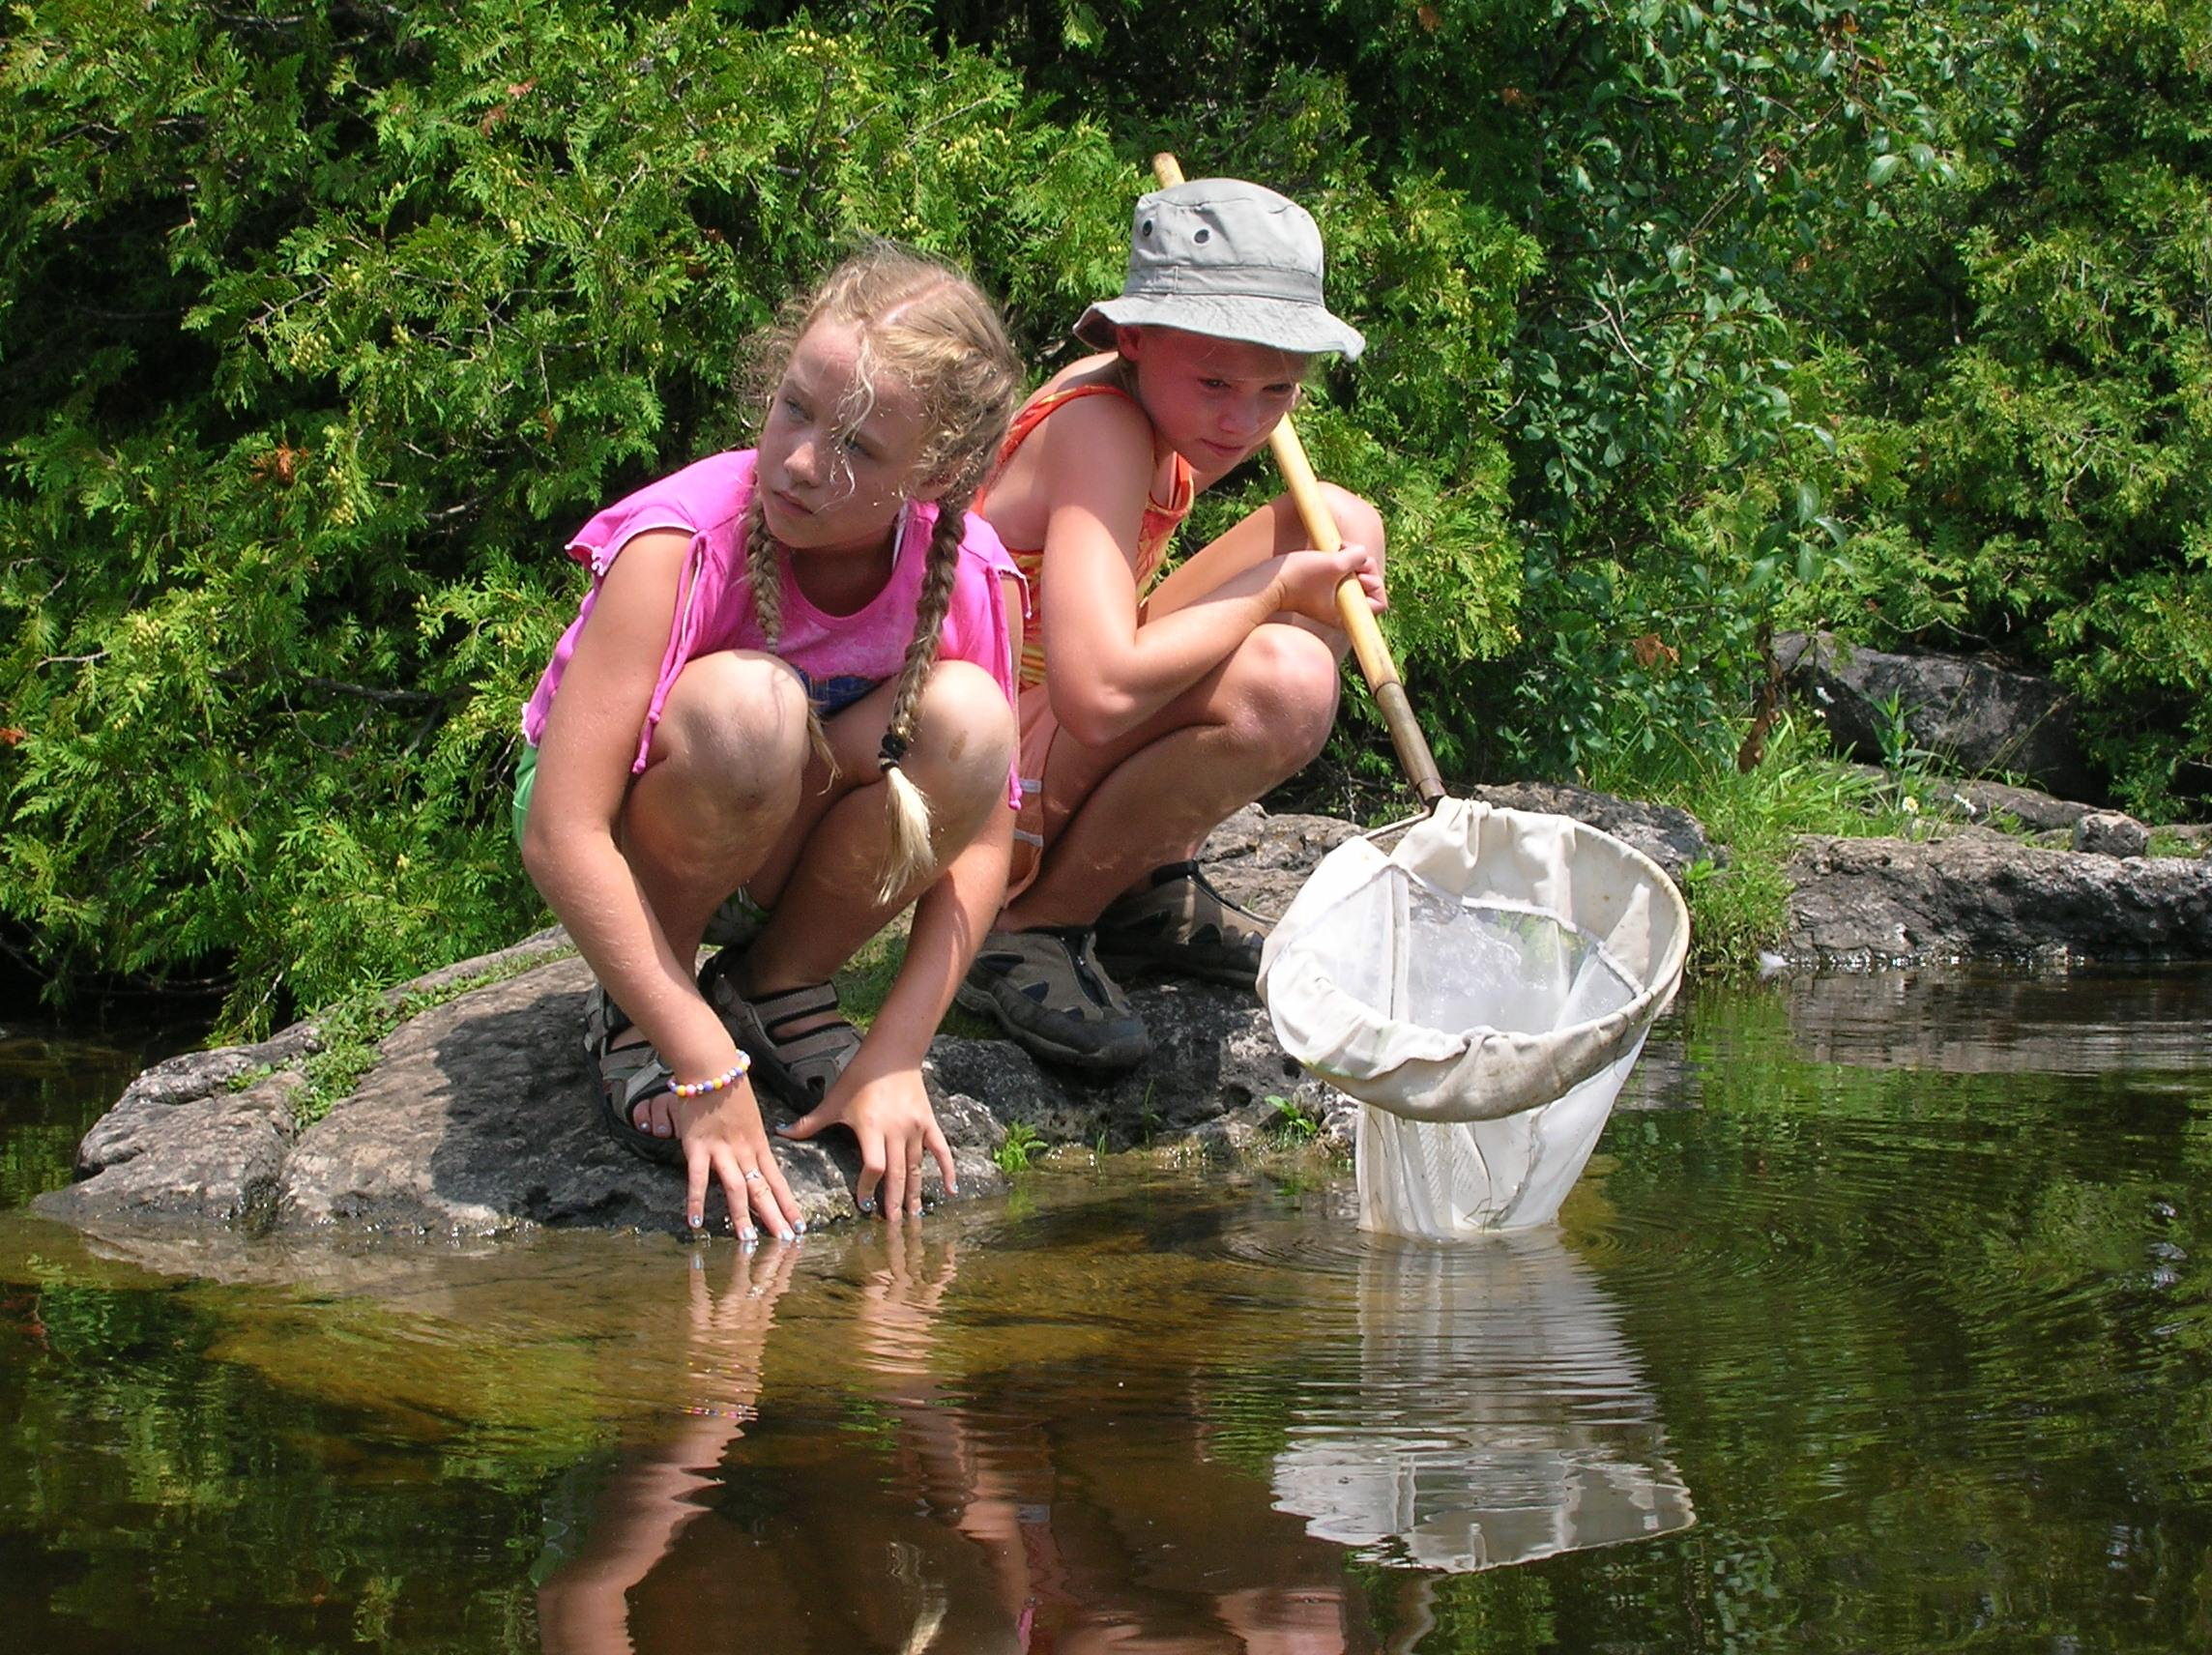 Adventure Day Camp at Guelph Lake Nature Centre - Summer 2018